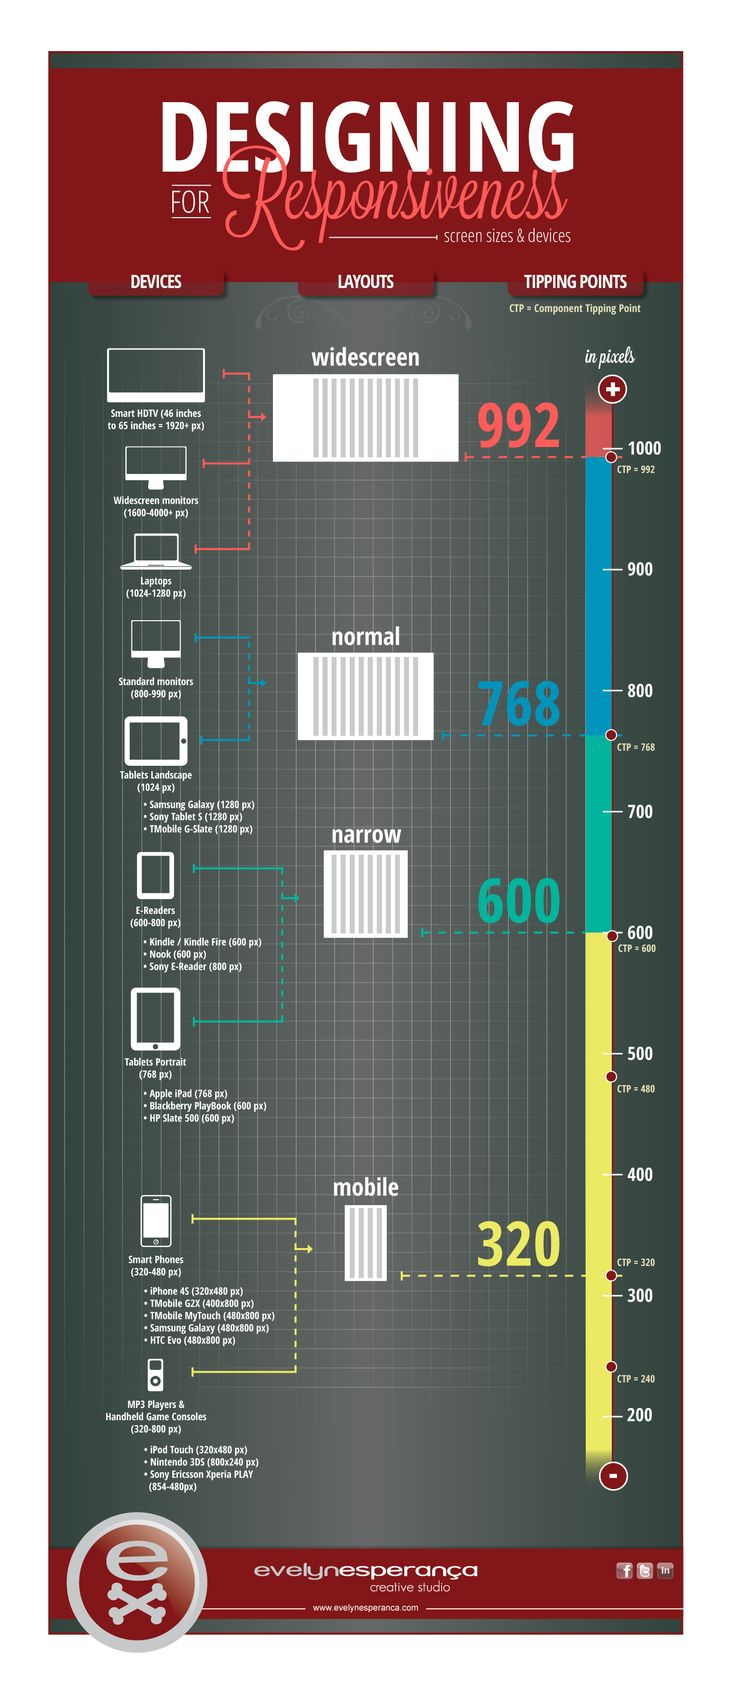 http://www.lunacatstudio.com Web Design My responsive design devices chart